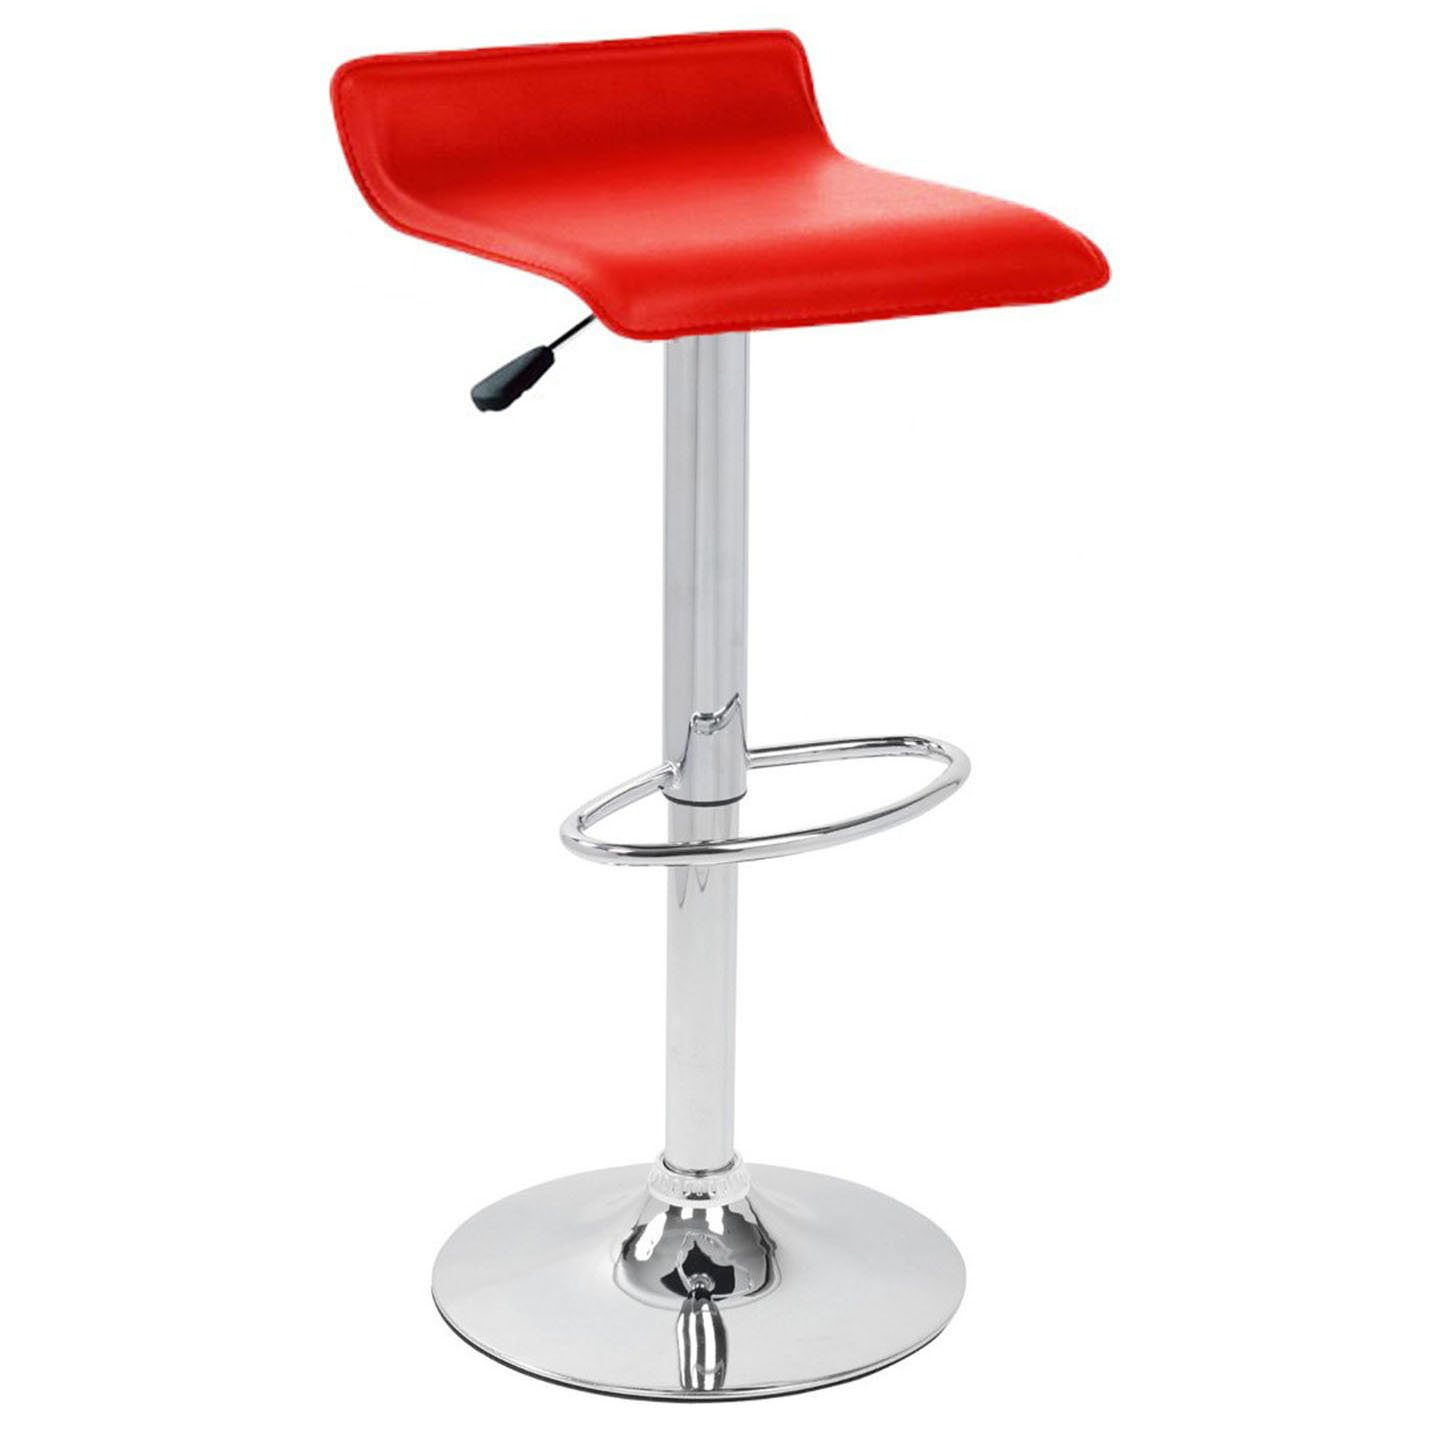 Baceno Bar Stool - Red Product Image